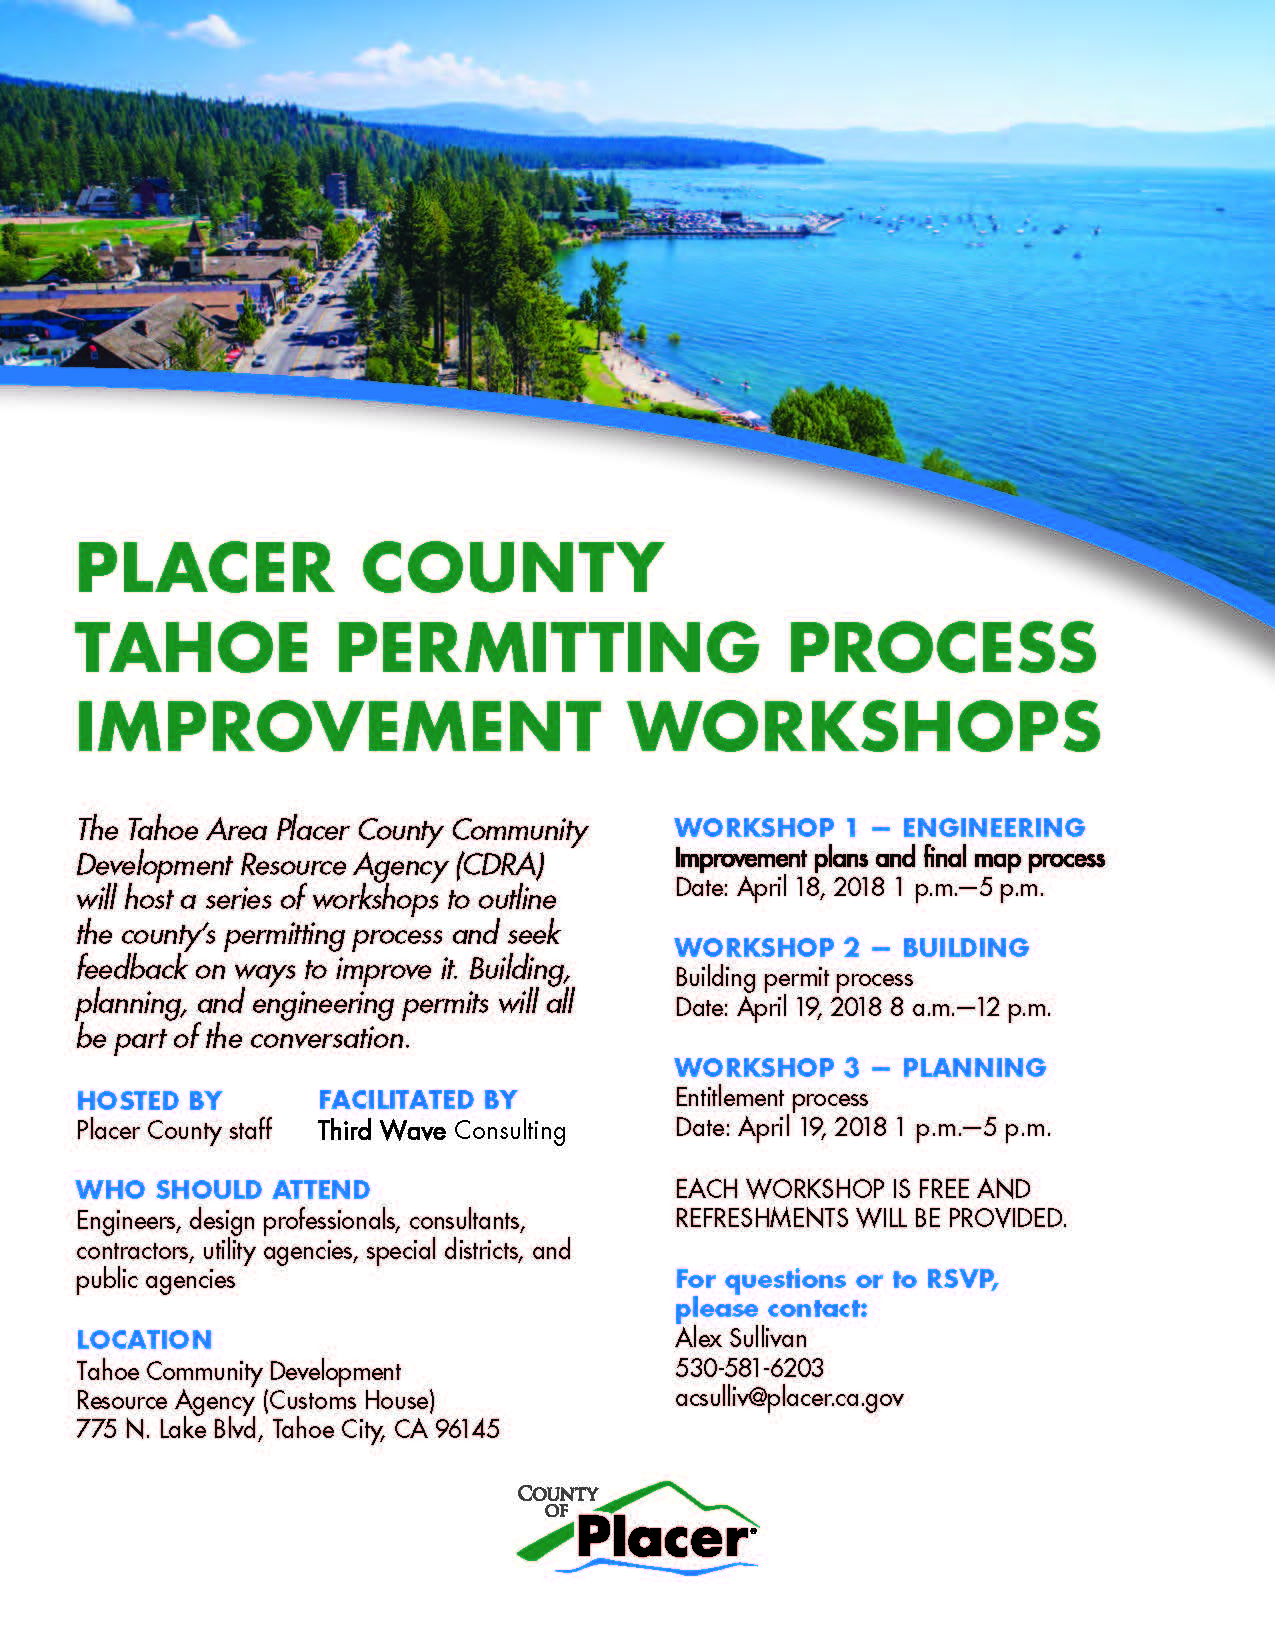 Placer County Process Improvement Workshops - Tahoe City